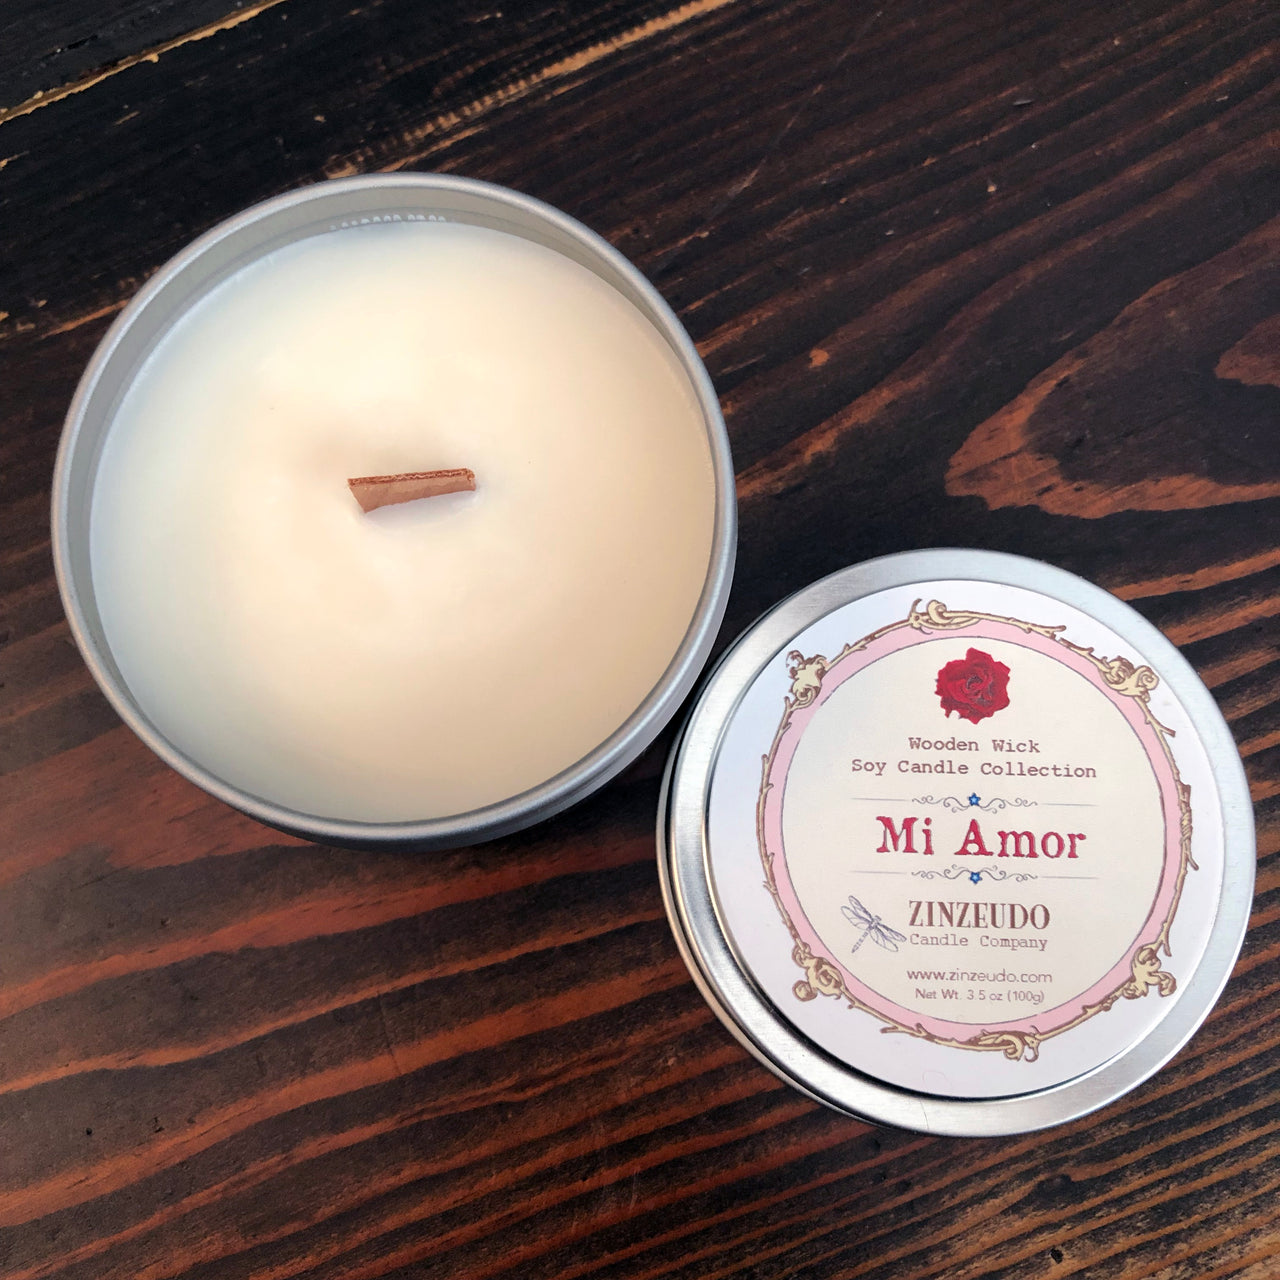 Mi Amor Wooden Wick Soy Candle